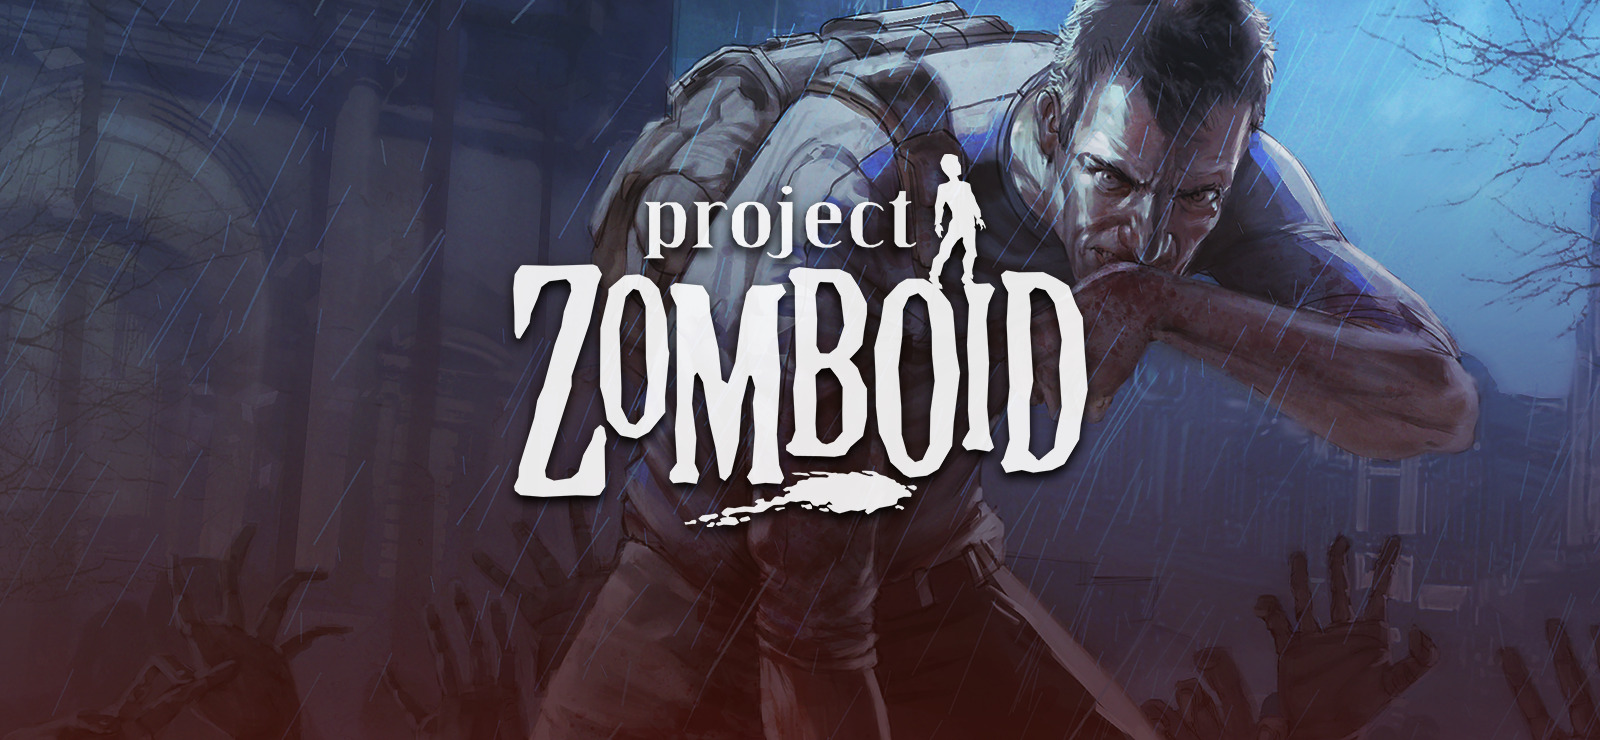 Project zomboid on gog forumfinder Gallery